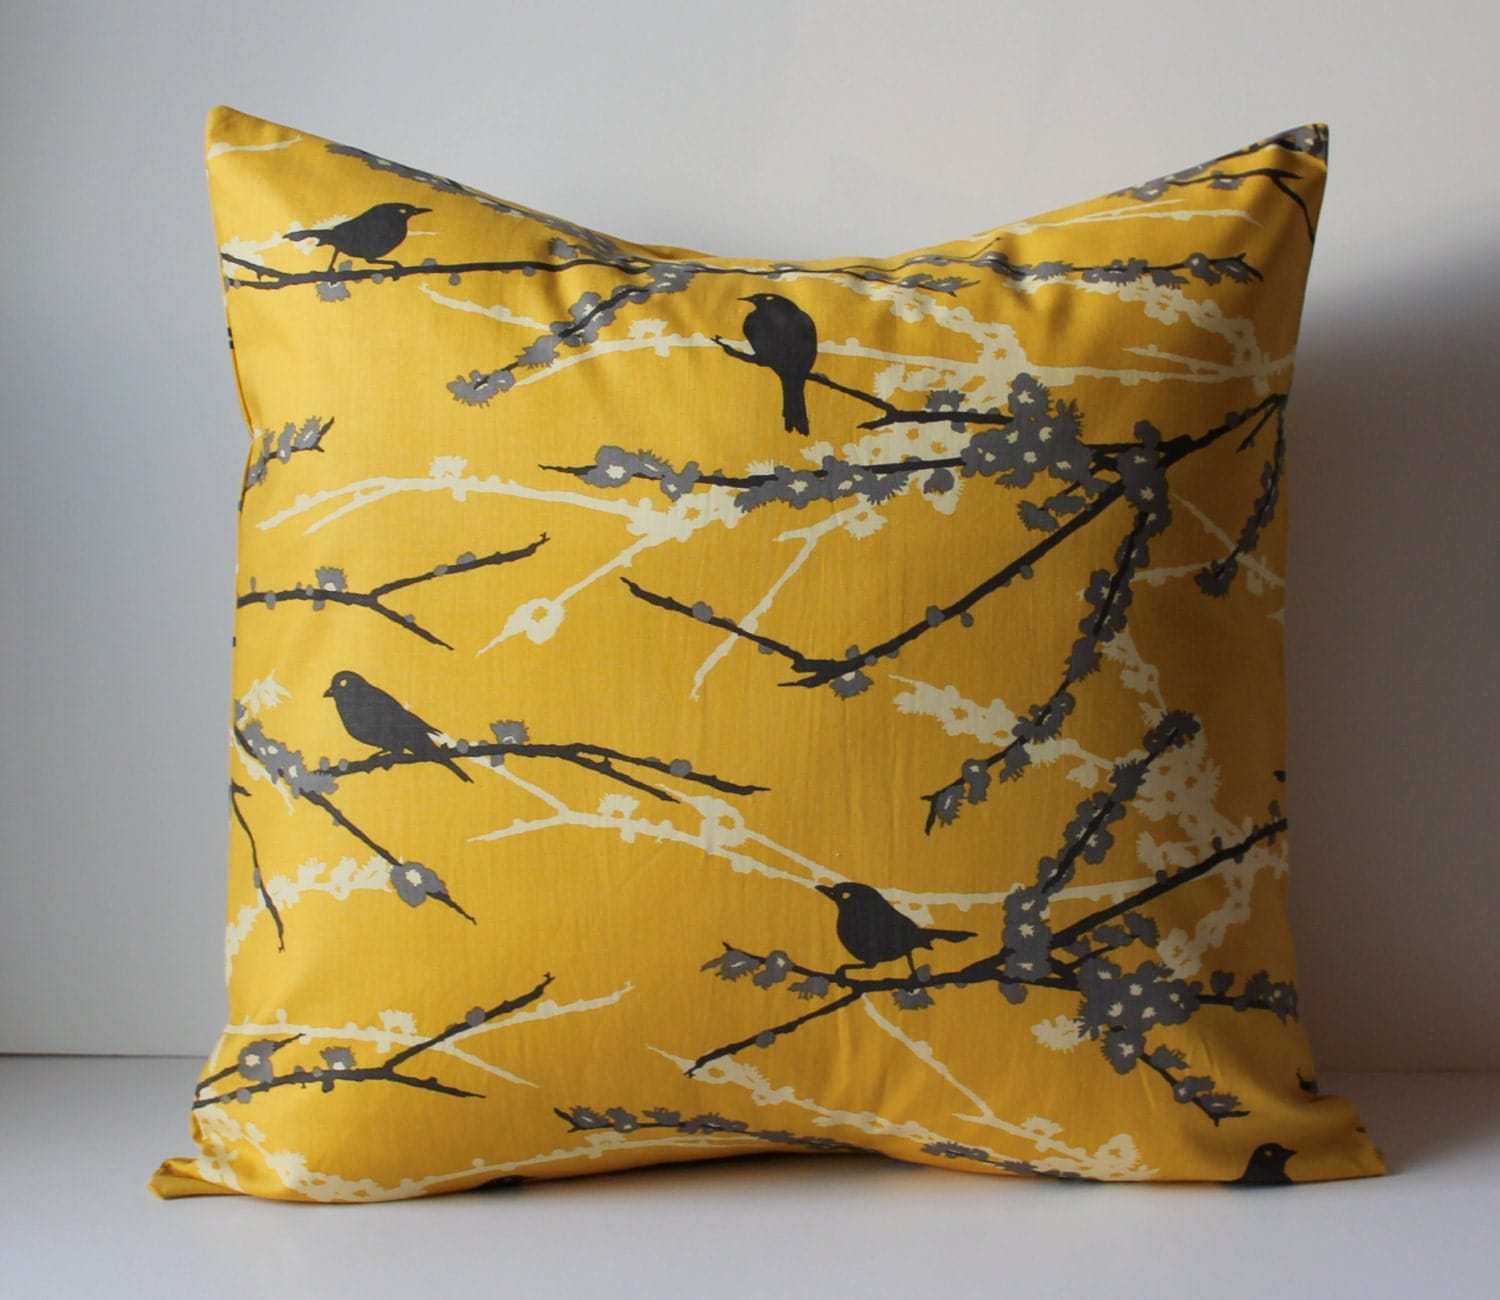 Decorative Pillows Cushion Cover Mustard Yellow & Gray Birds